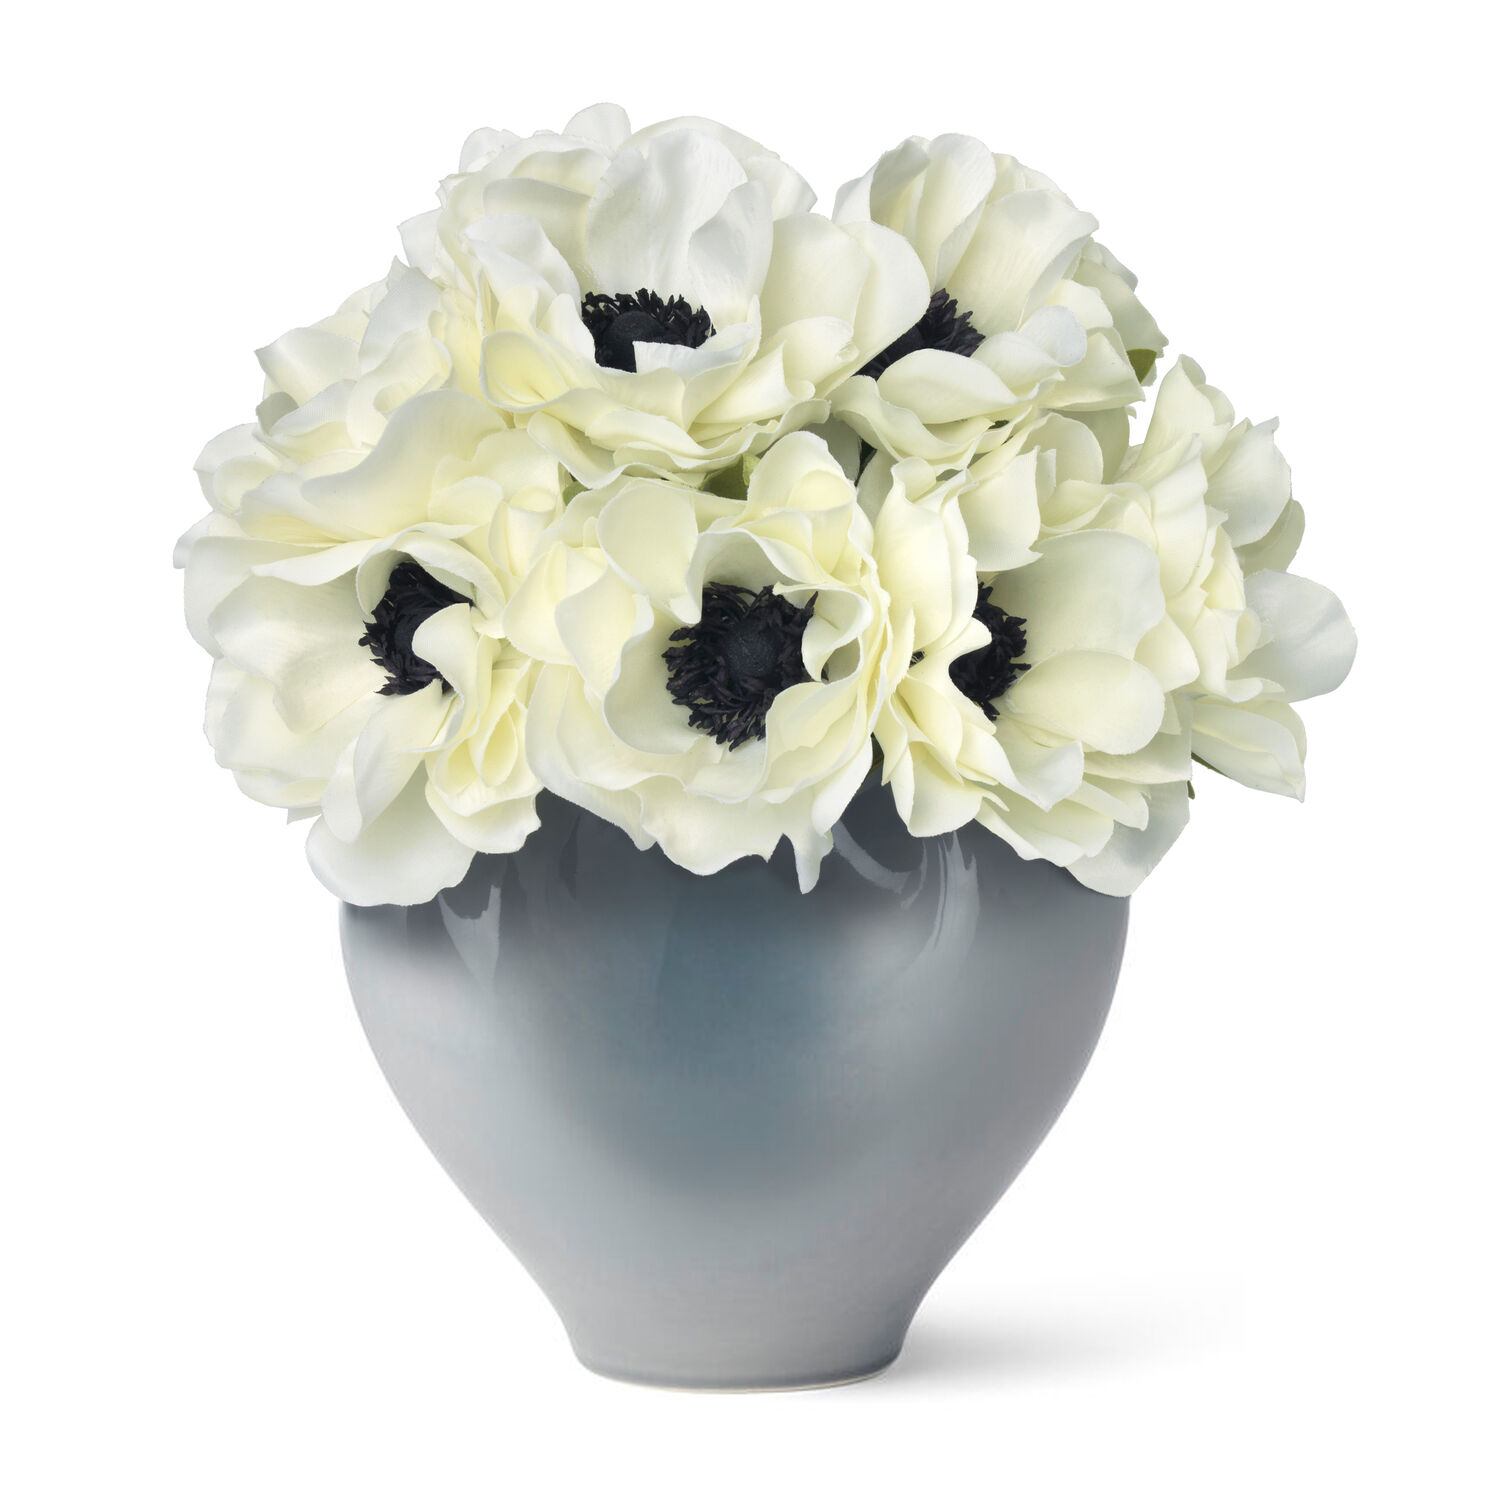 White Anemones and Paola Small Vase